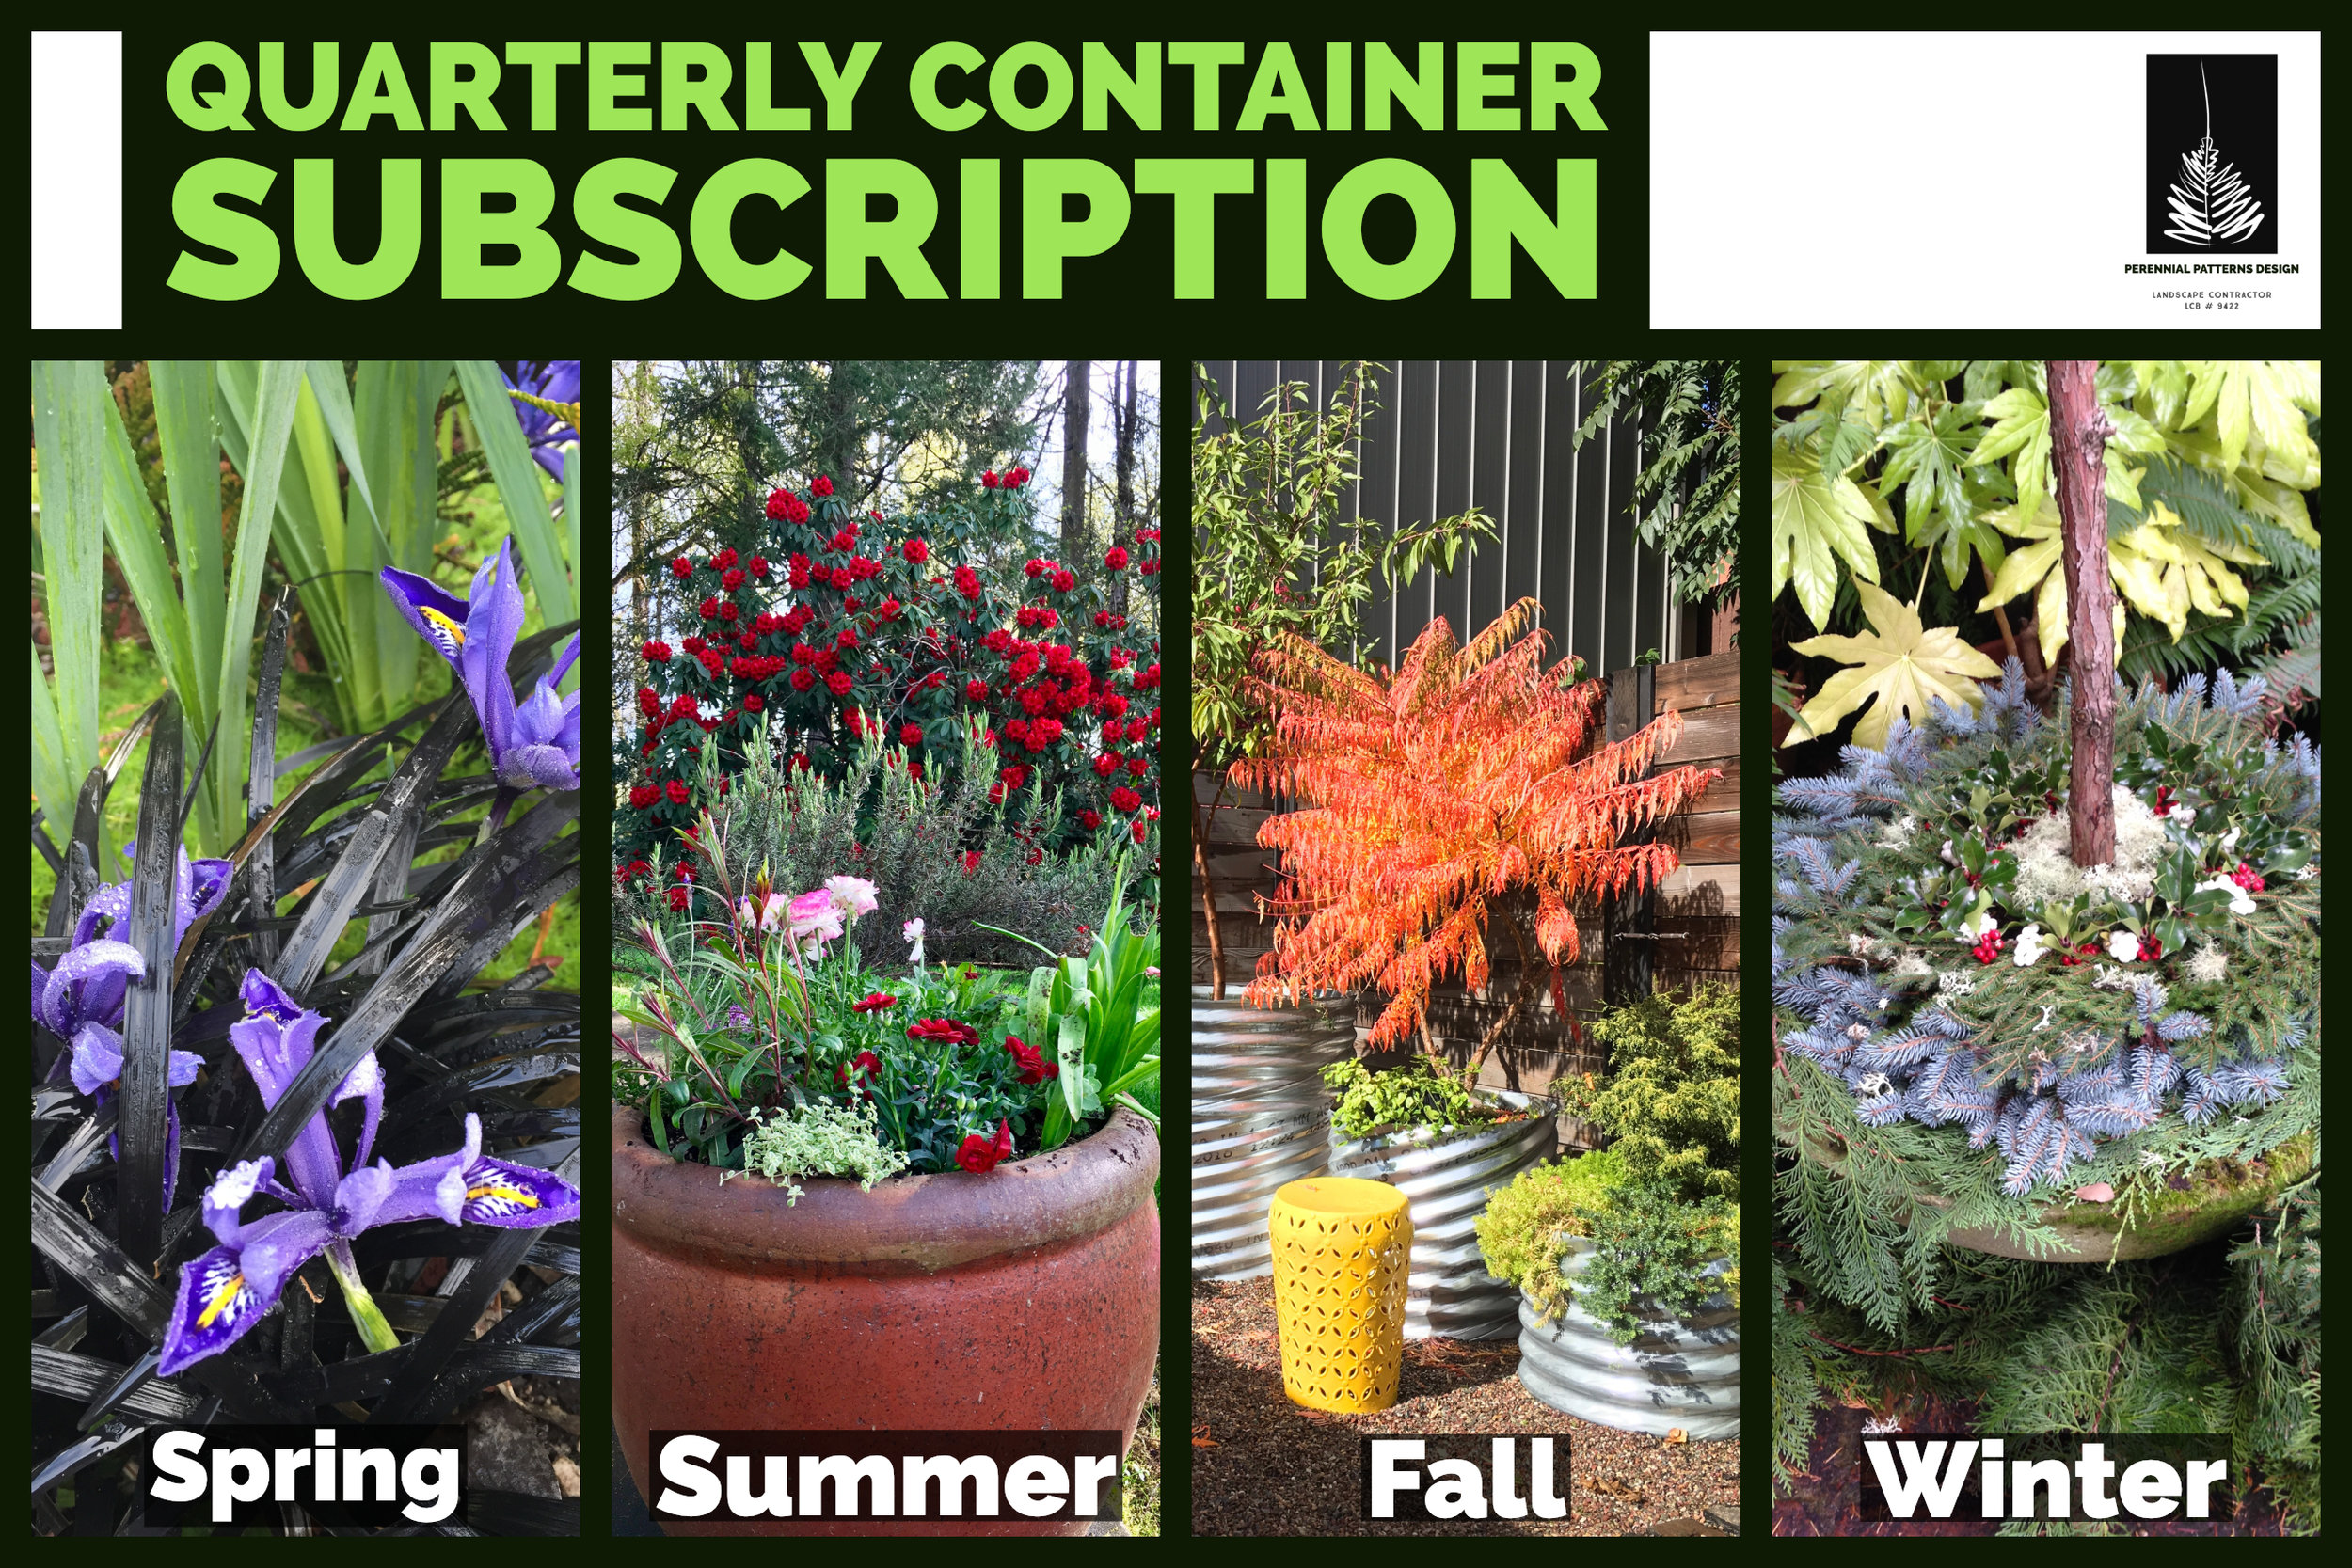 Get Fresh Plants 4x a Year with the Annual Package.  Perfect for Restaurants or Commercial Sites that want Year-Round Color and Seasonal Interest.    CLICK HERE   for more information on available options and package pricing.